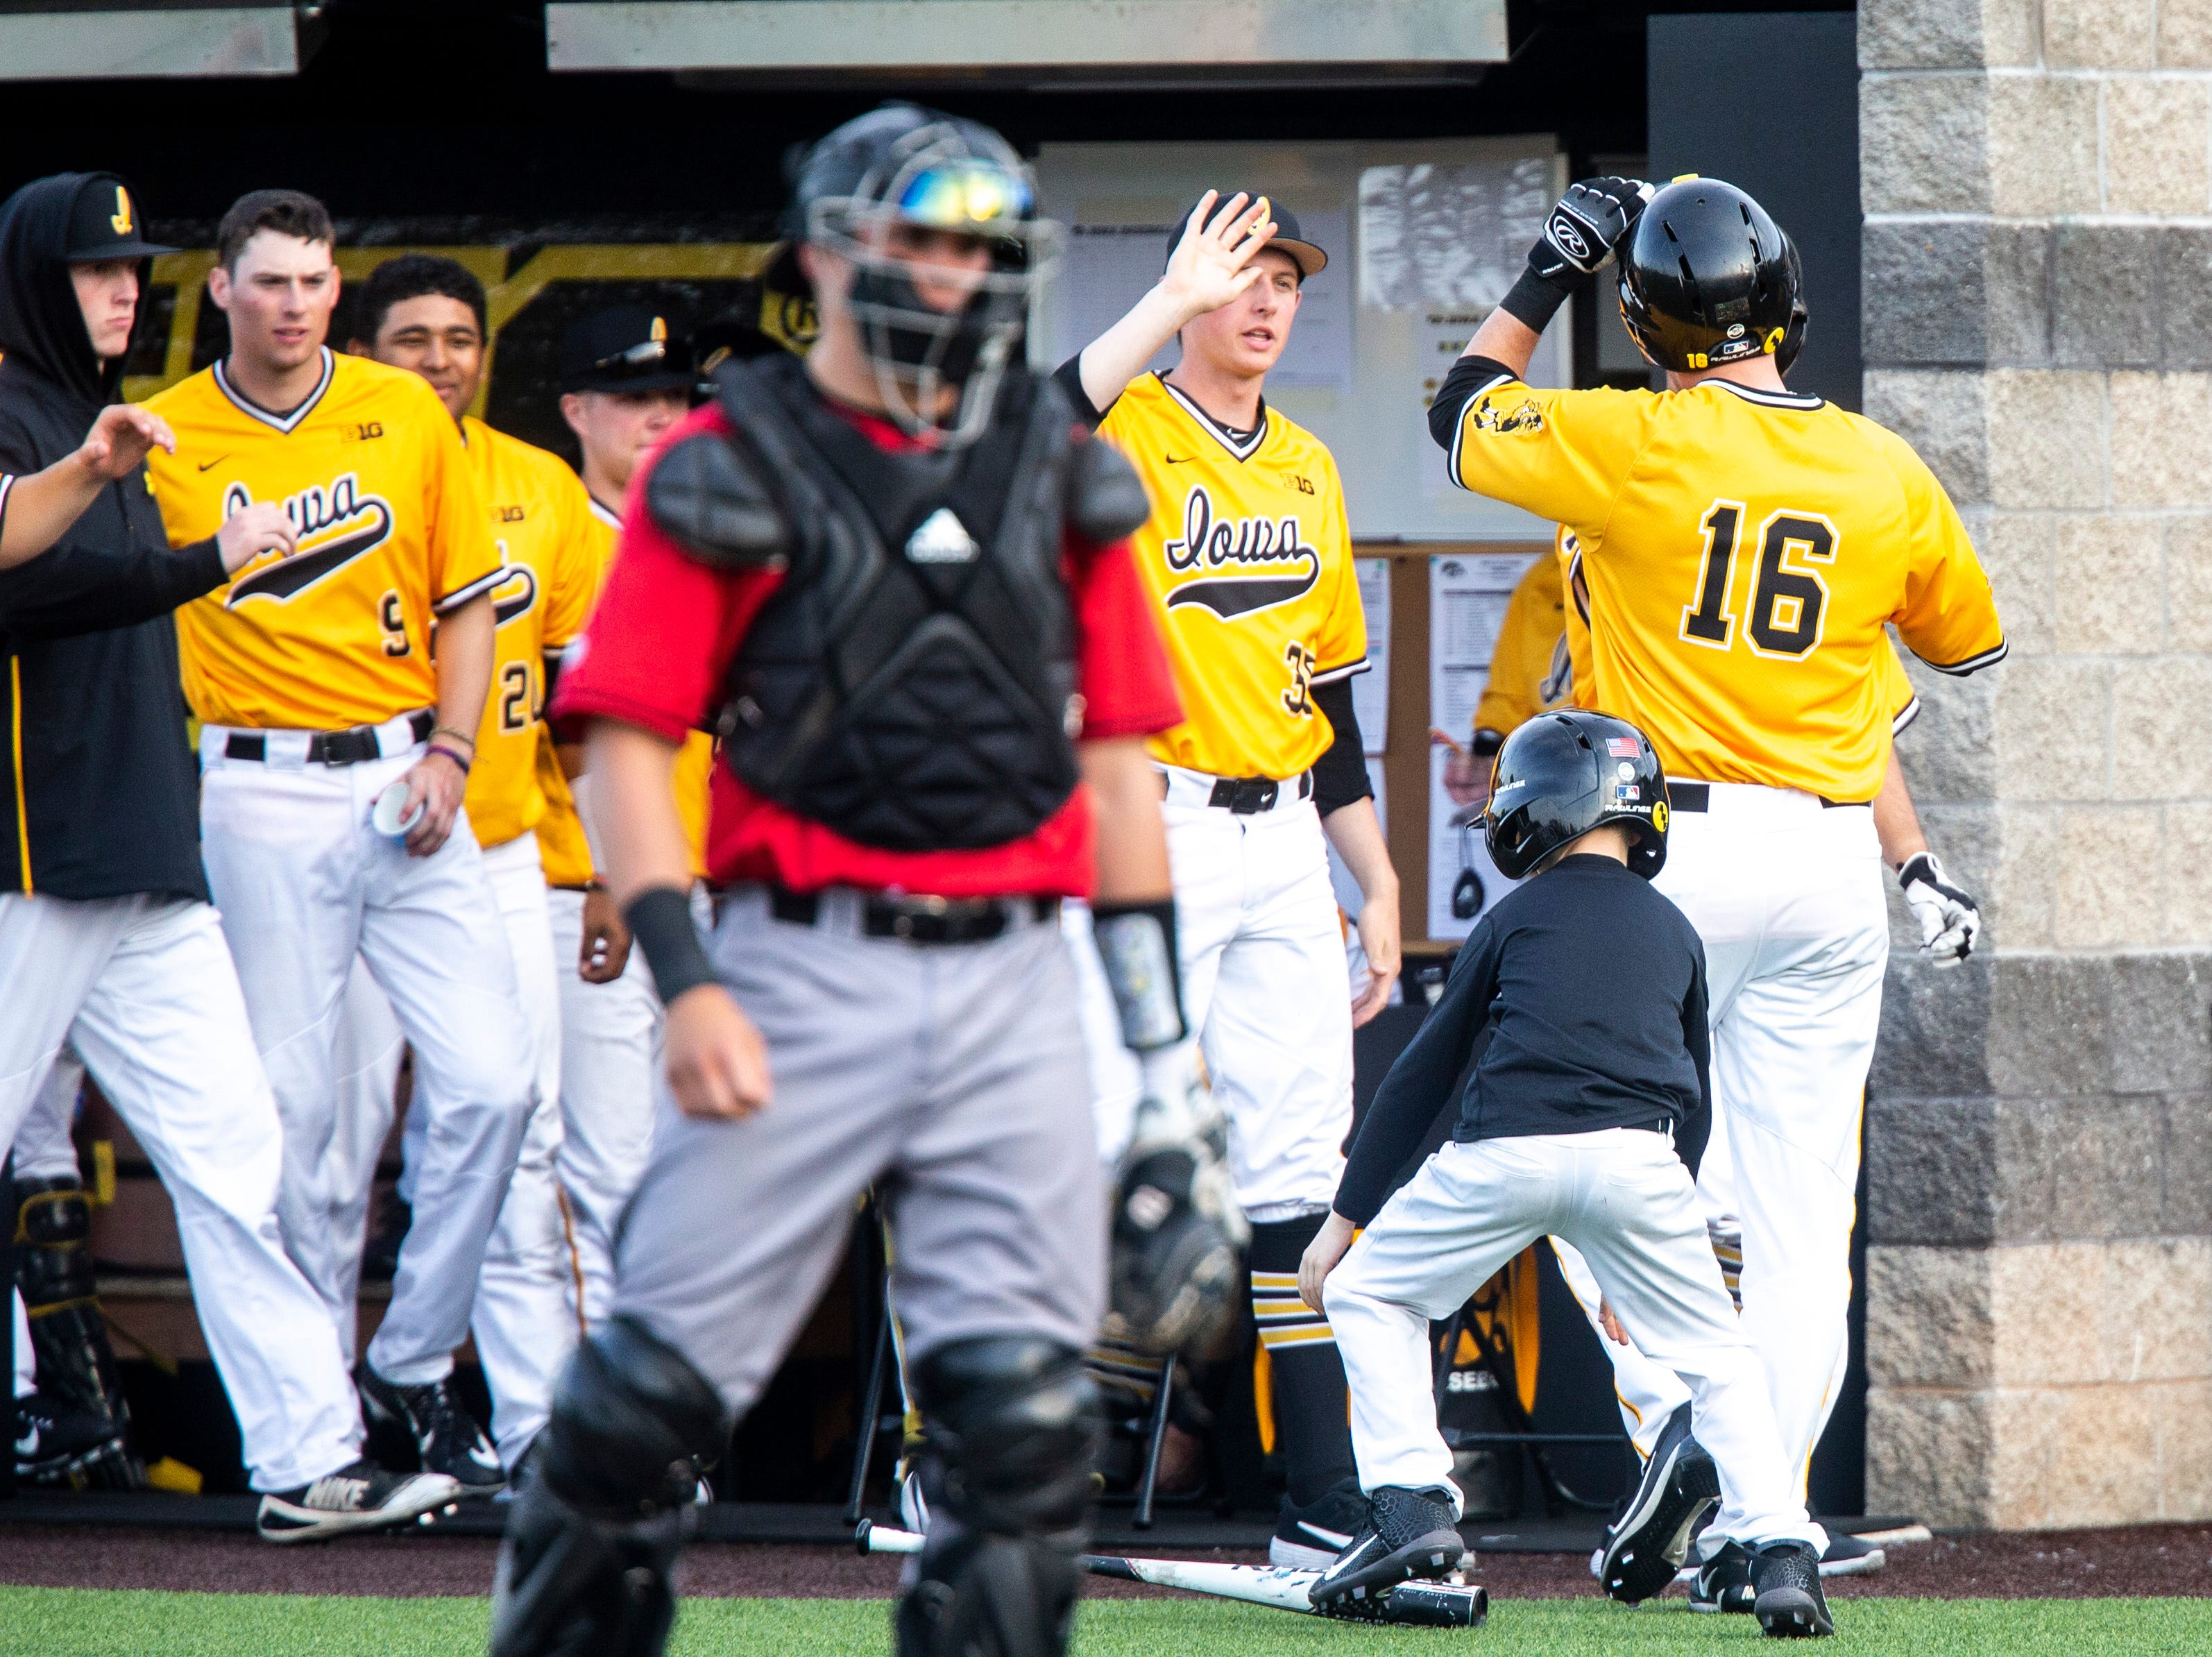 Iowa's Tanner Wetrich (16) gets a high-five after scoring a run during a NCAA Big Ten Conference baseball game on Saturday, April 6, 2019, at Duane Banks Field in Iowa City, Iowa.